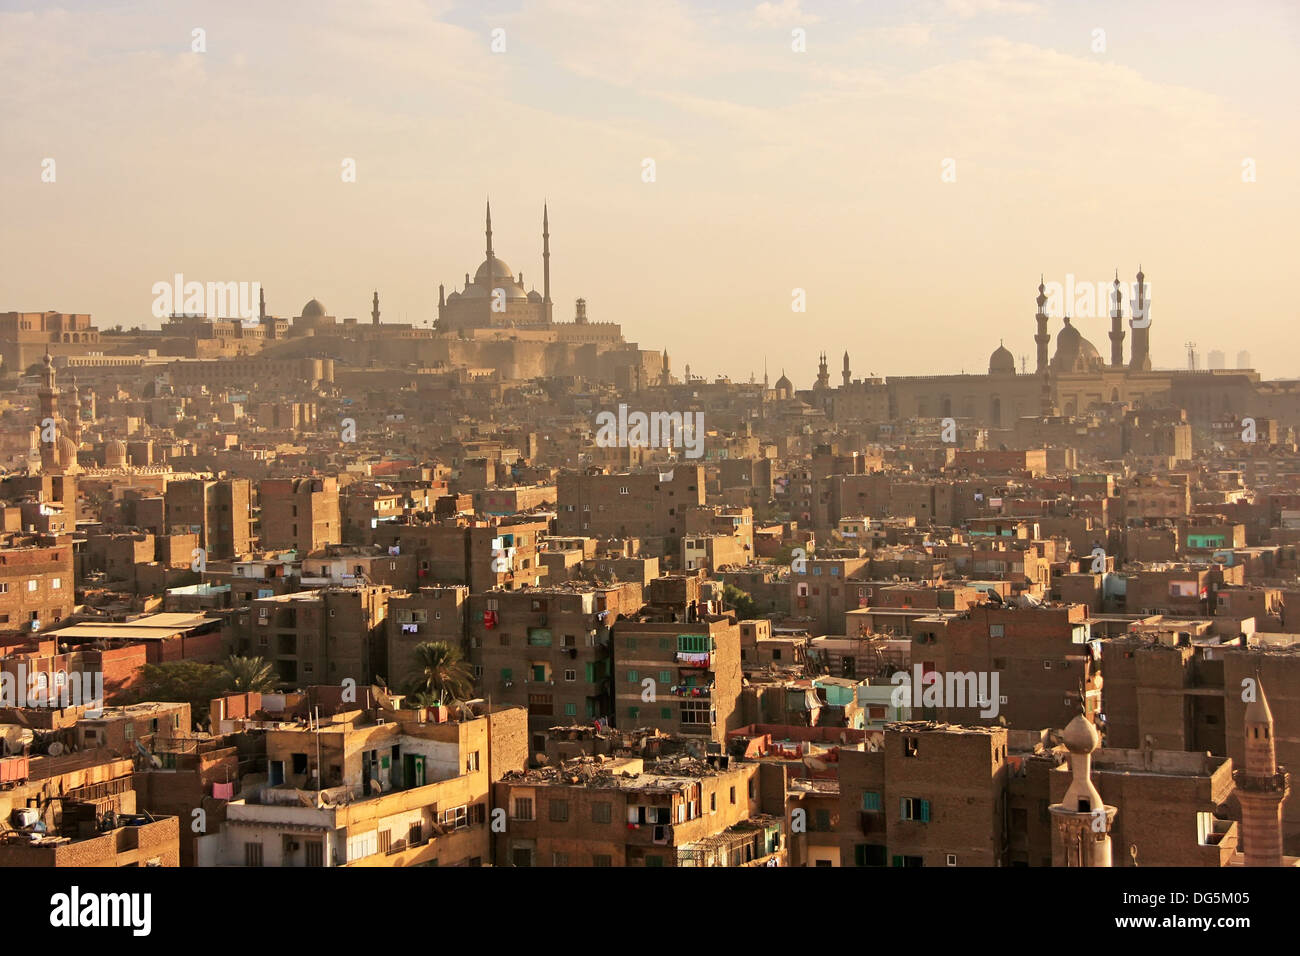 Old Cairo Stock Photos & Old Cairo Stock Images - Alamy